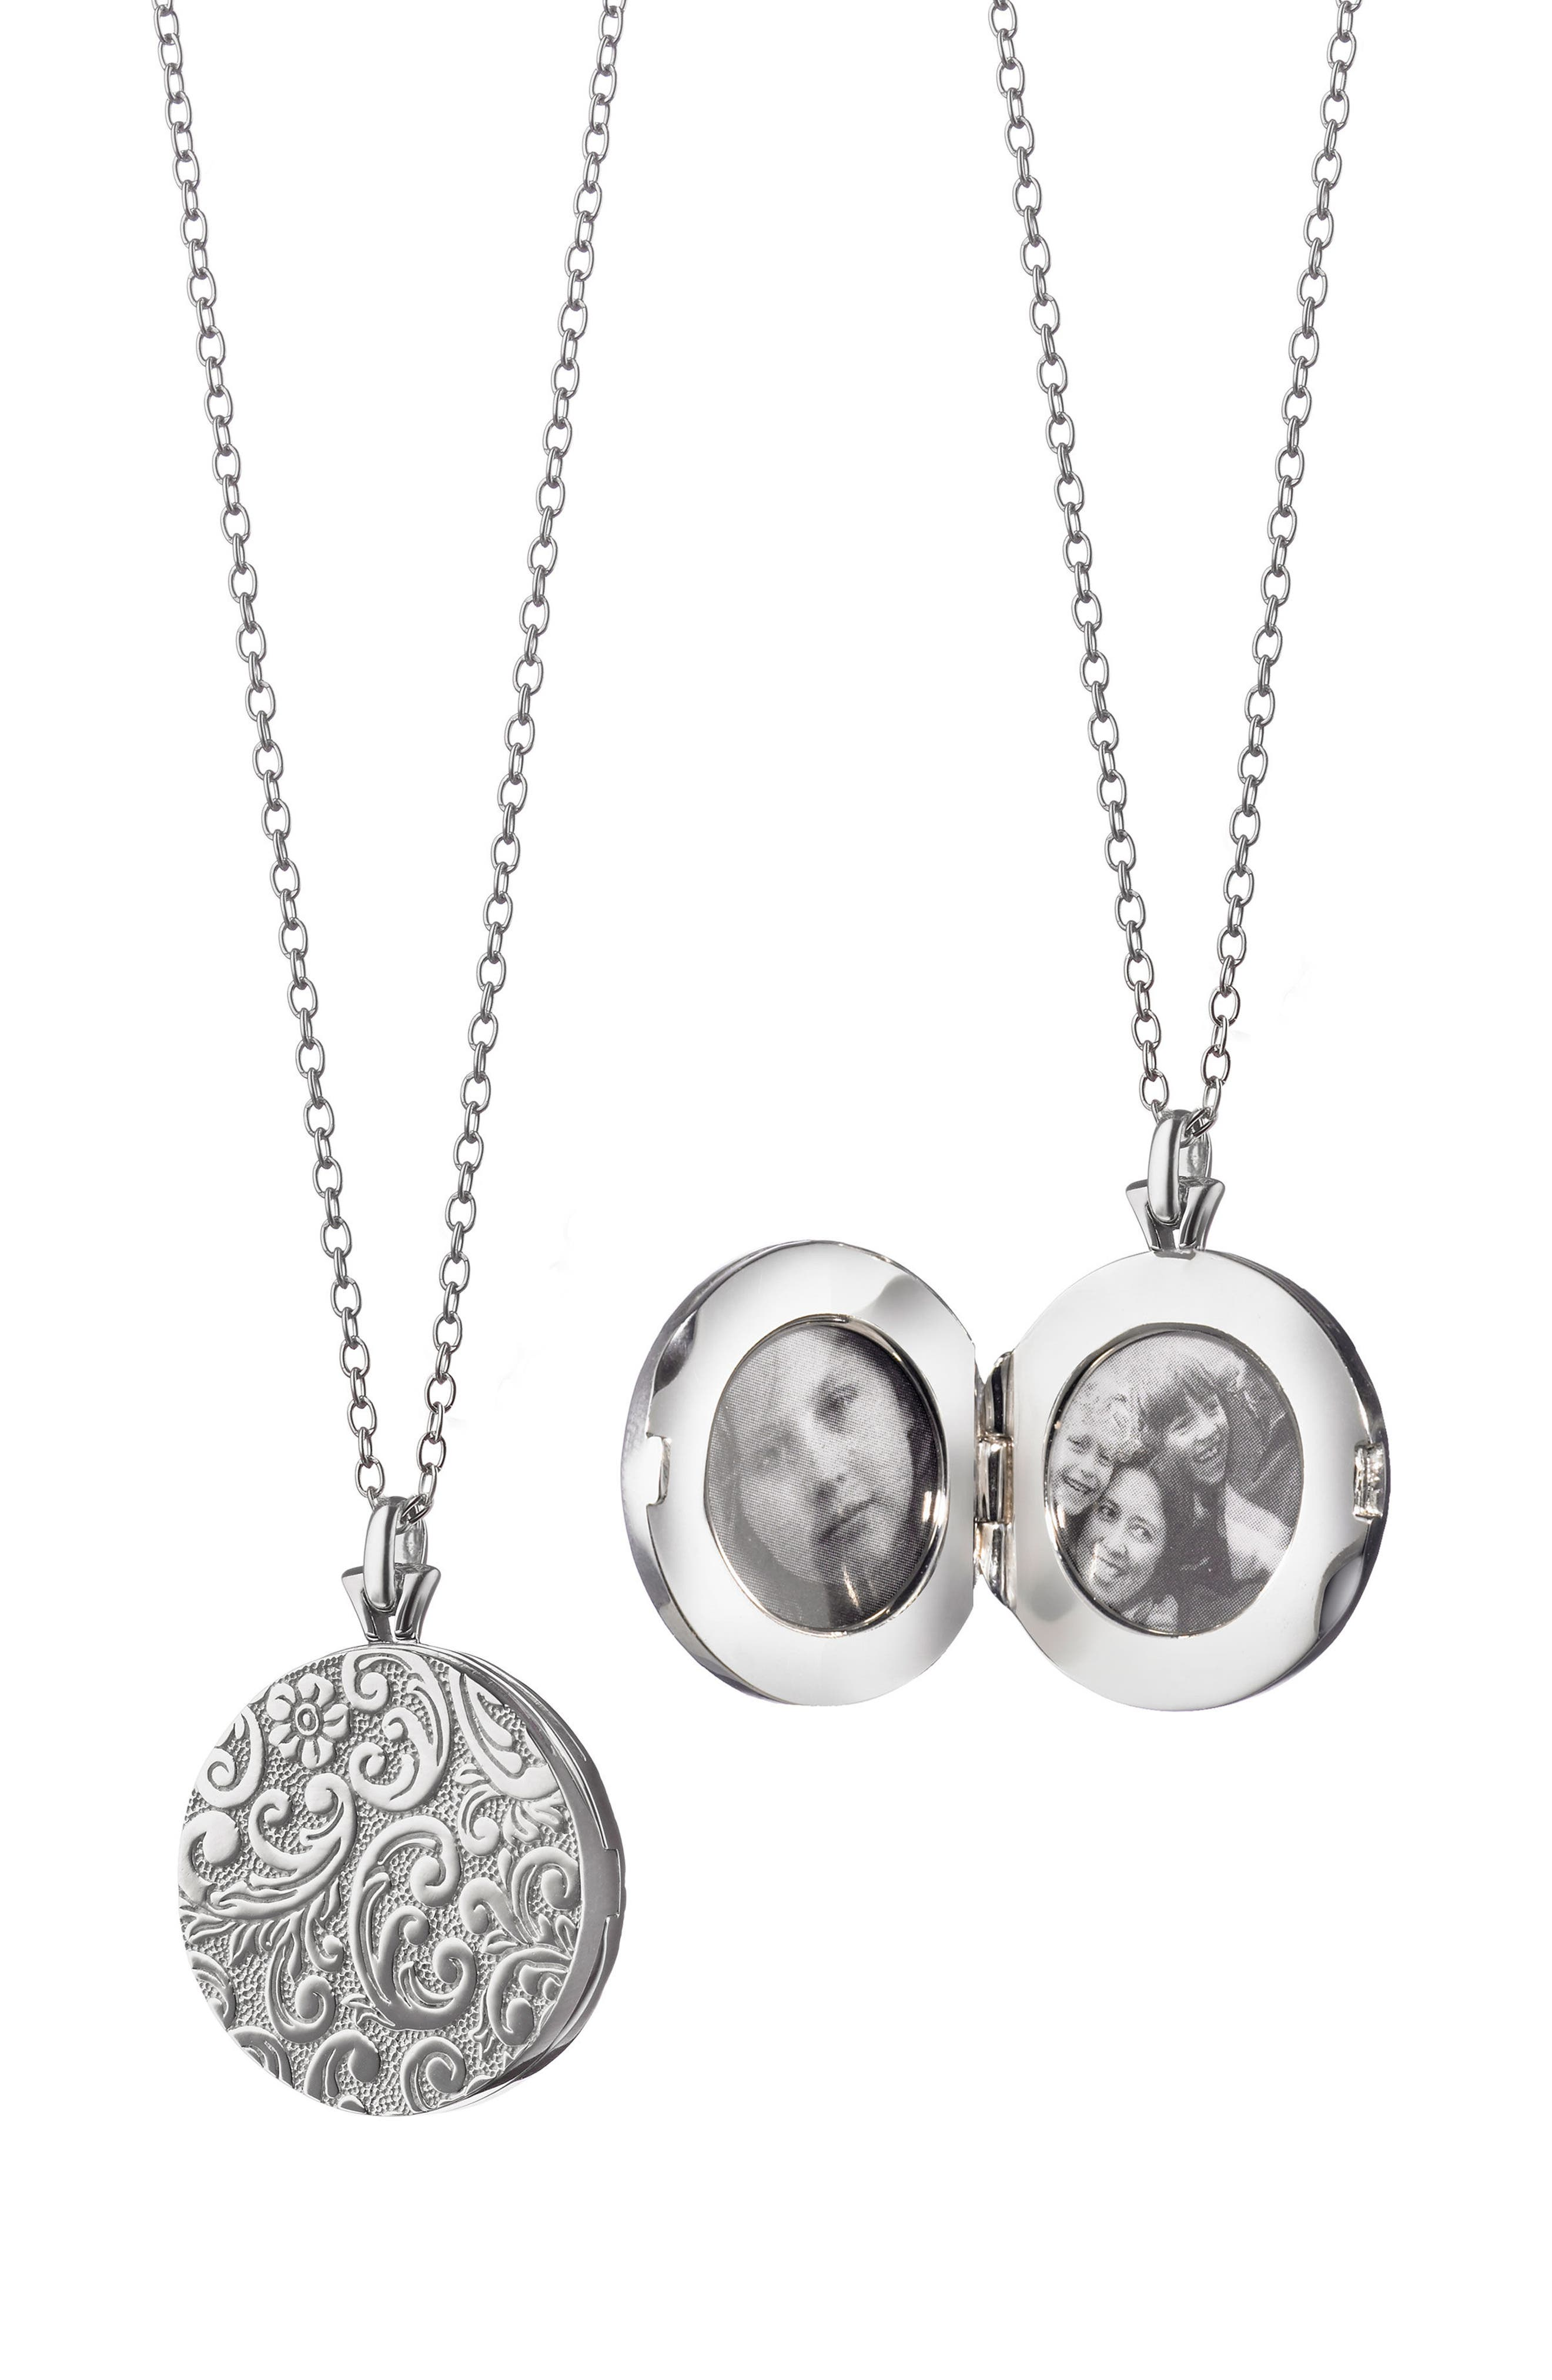 Round Floral Locket Necklace,                             Alternate thumbnail 4, color,                             STERLING SILVER